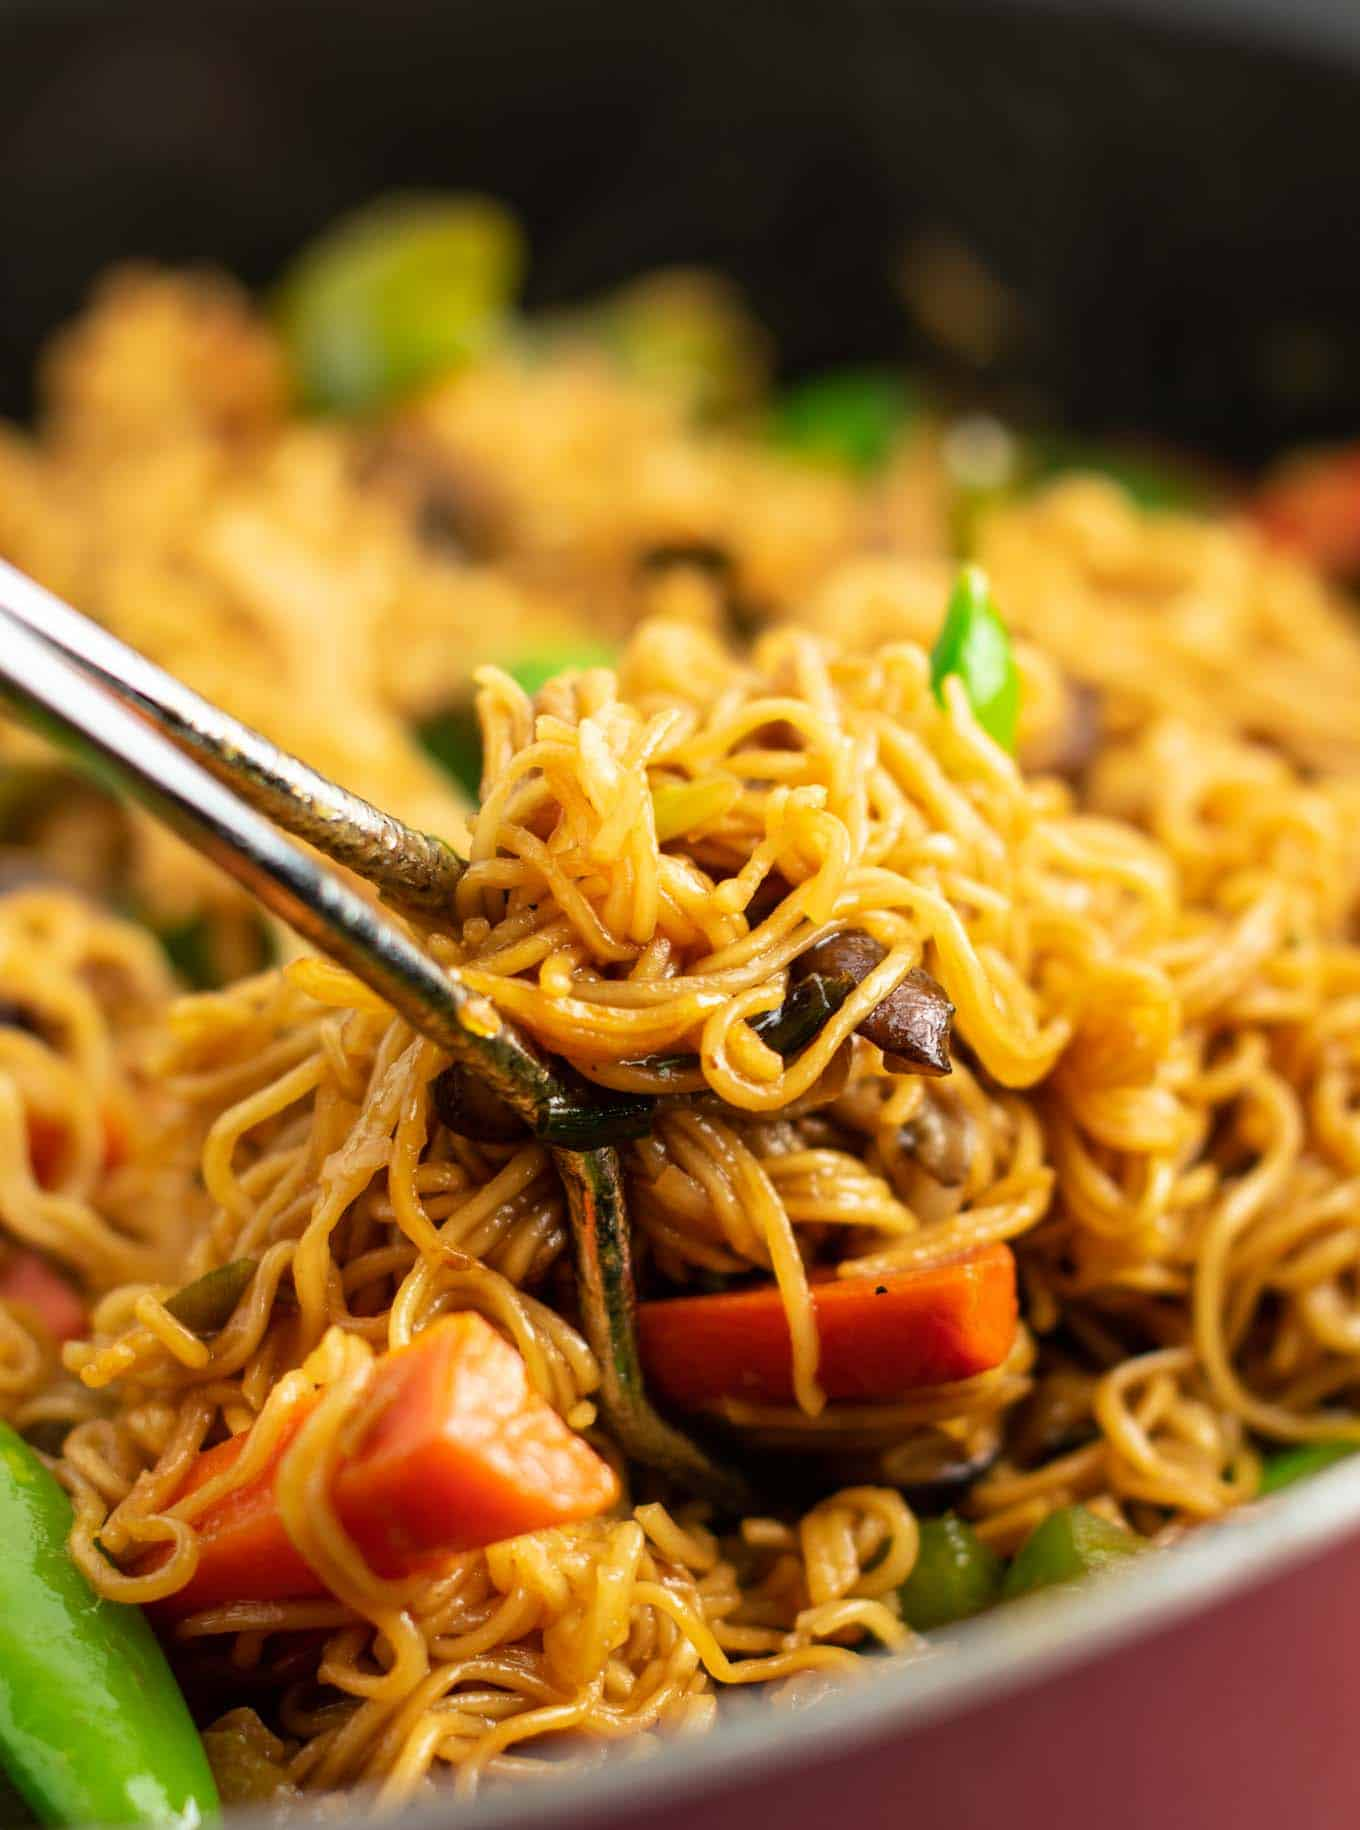 vegetable stir fry noodles recipe